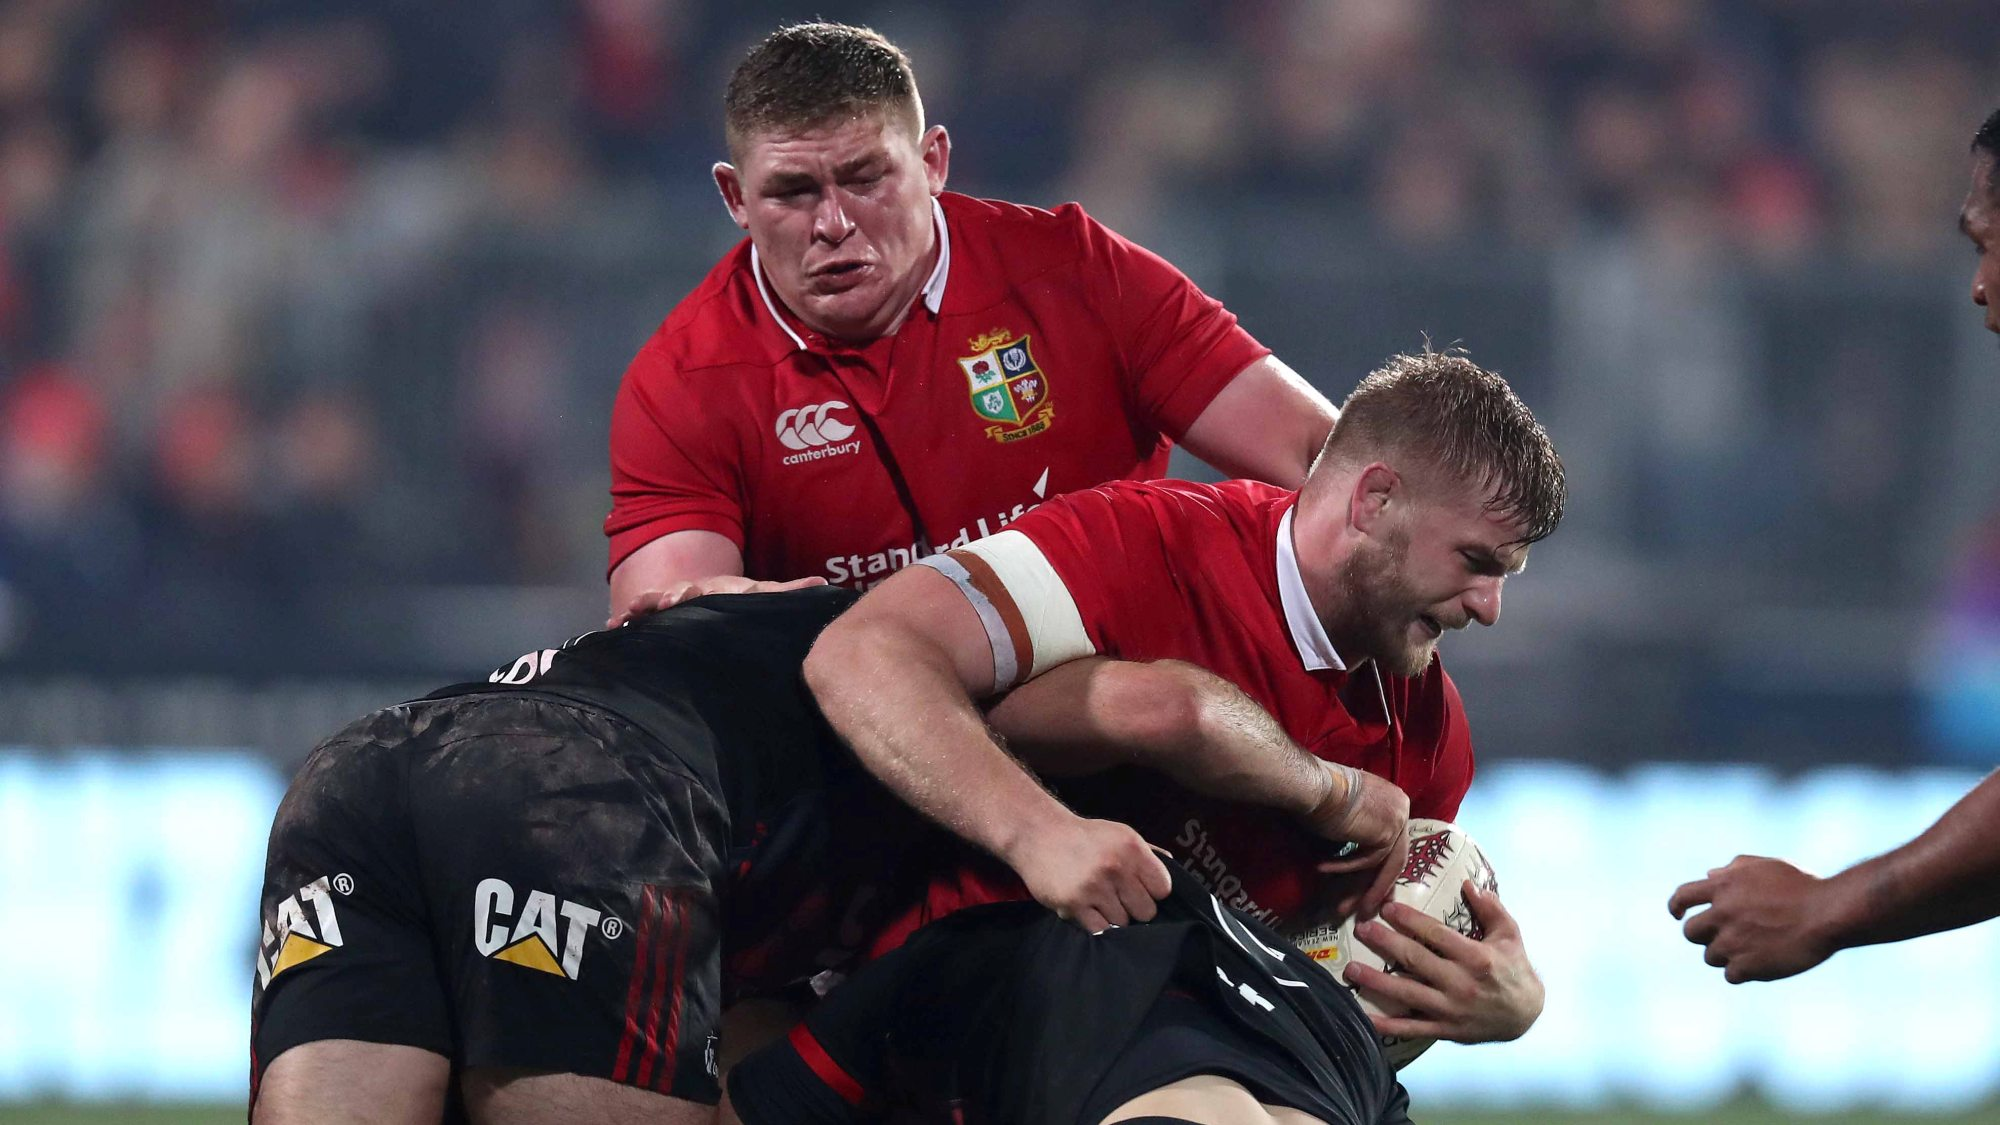 Video: Kruis excited by Lions set-piece potential